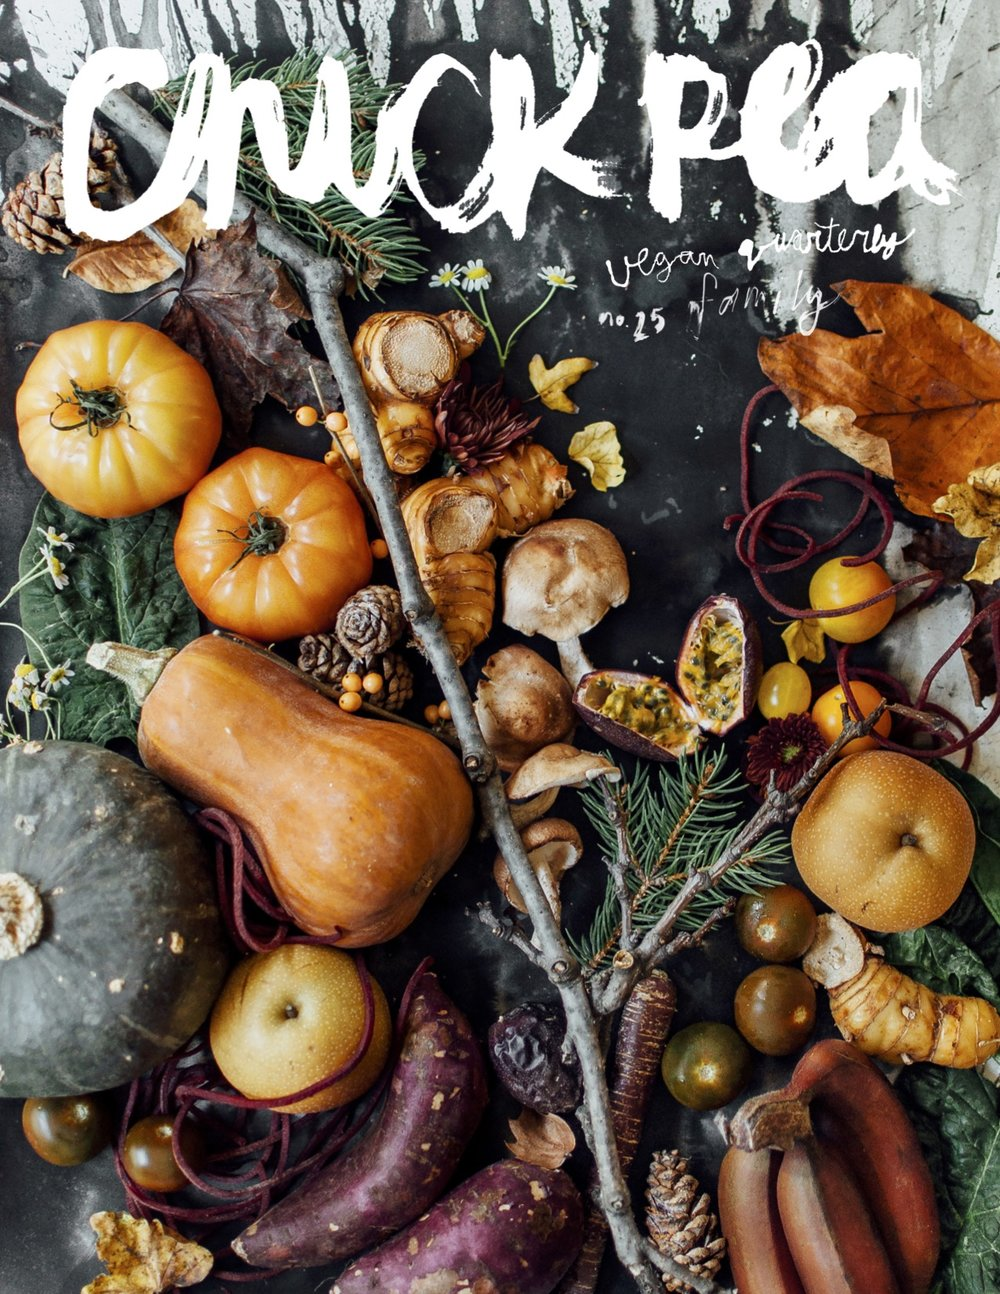 chickpea issue 25 - cover.jpg